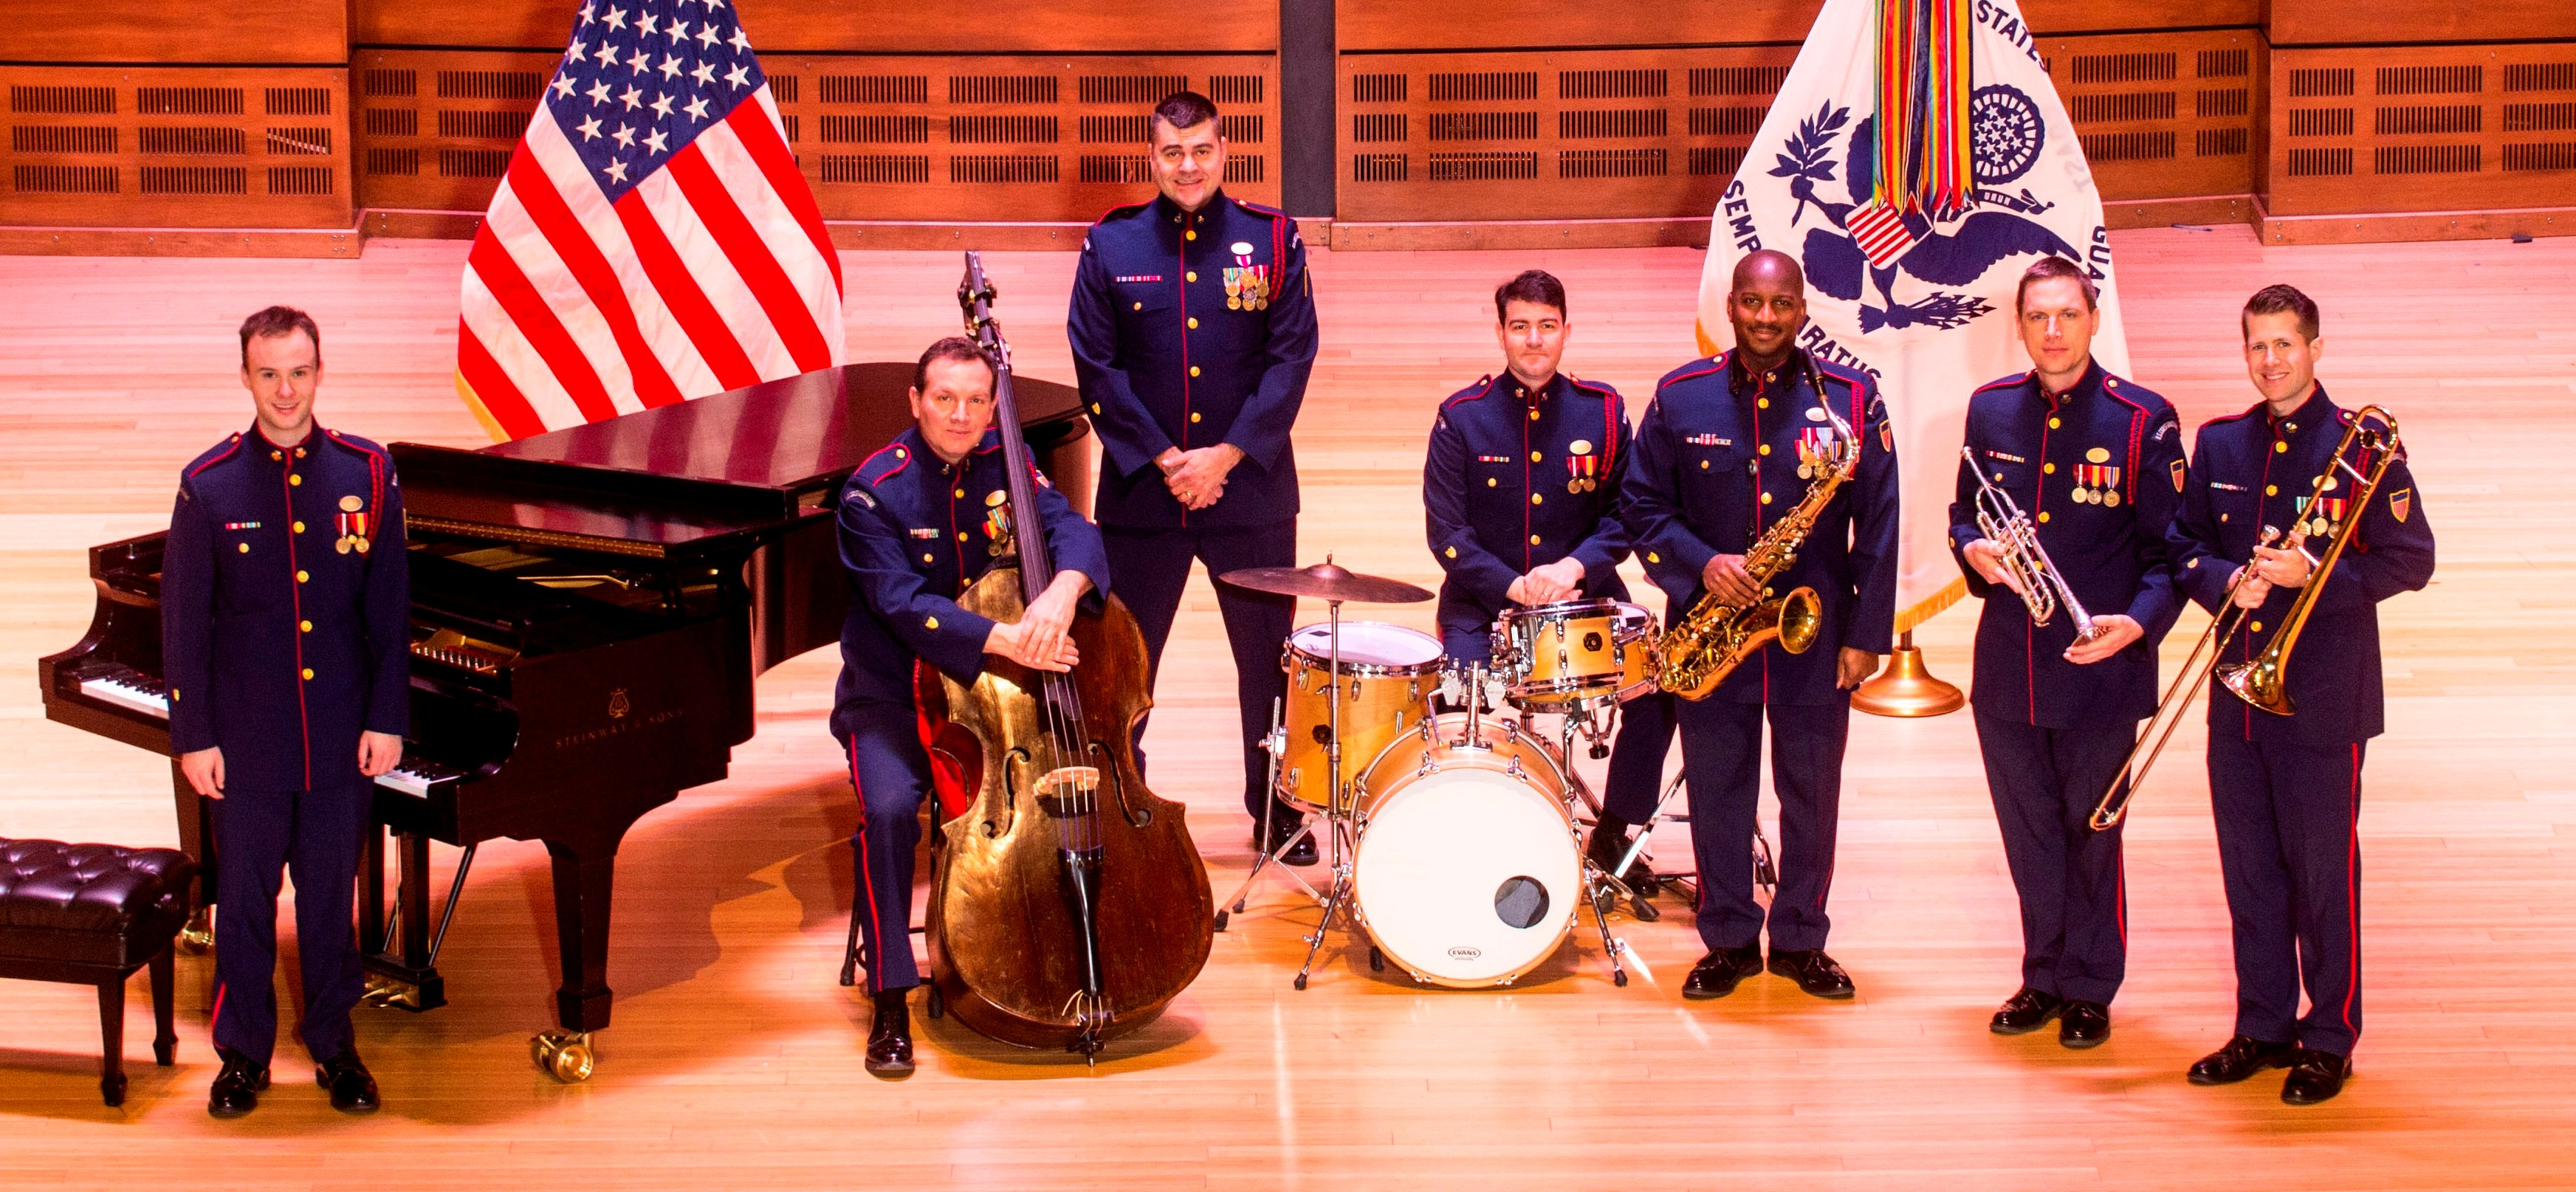 Dixieland Jazz Band at the Millennium Stage, Kennedy Center